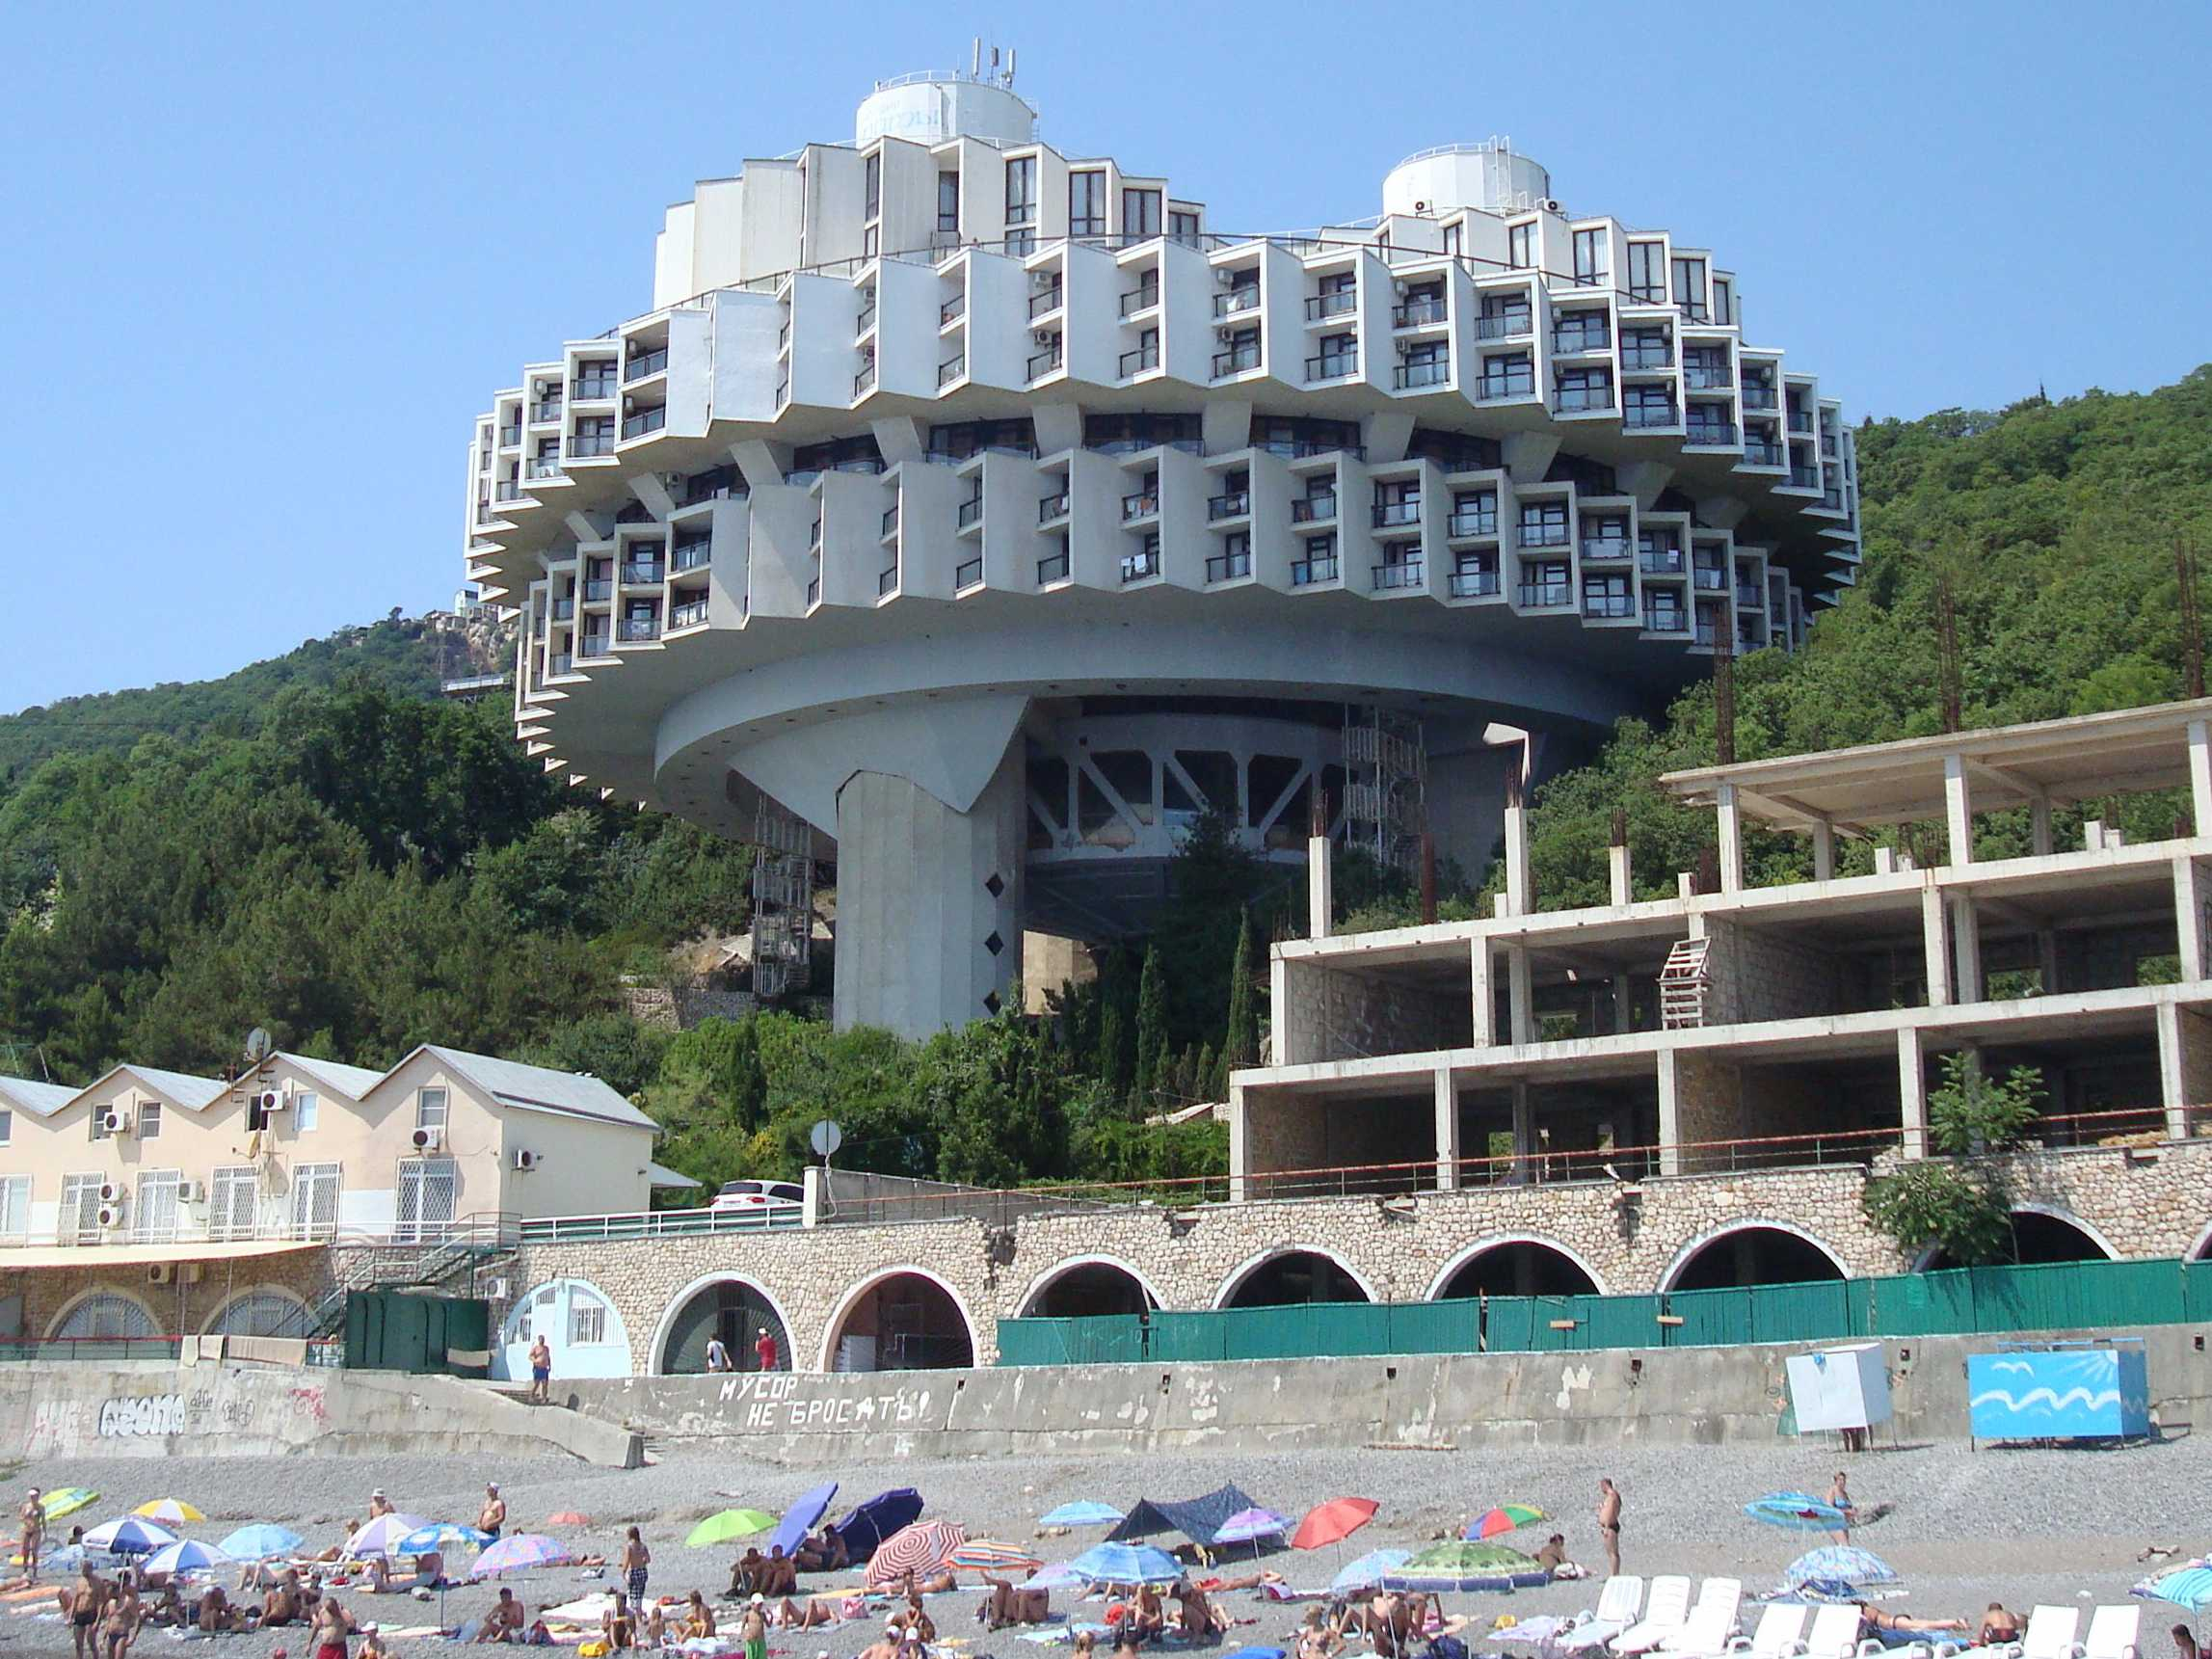 http://www.businessinsider.in/photo/52363872/the-12-most-absurd-soviet-era-buildings-that-are-still-standing/This-resort-in-Ukraine-combines-two-late-Soviet-architectural-trends-Constructing-things-off-the-ground-and-buildings-that-look-slightly-like-UFOs-.jpg